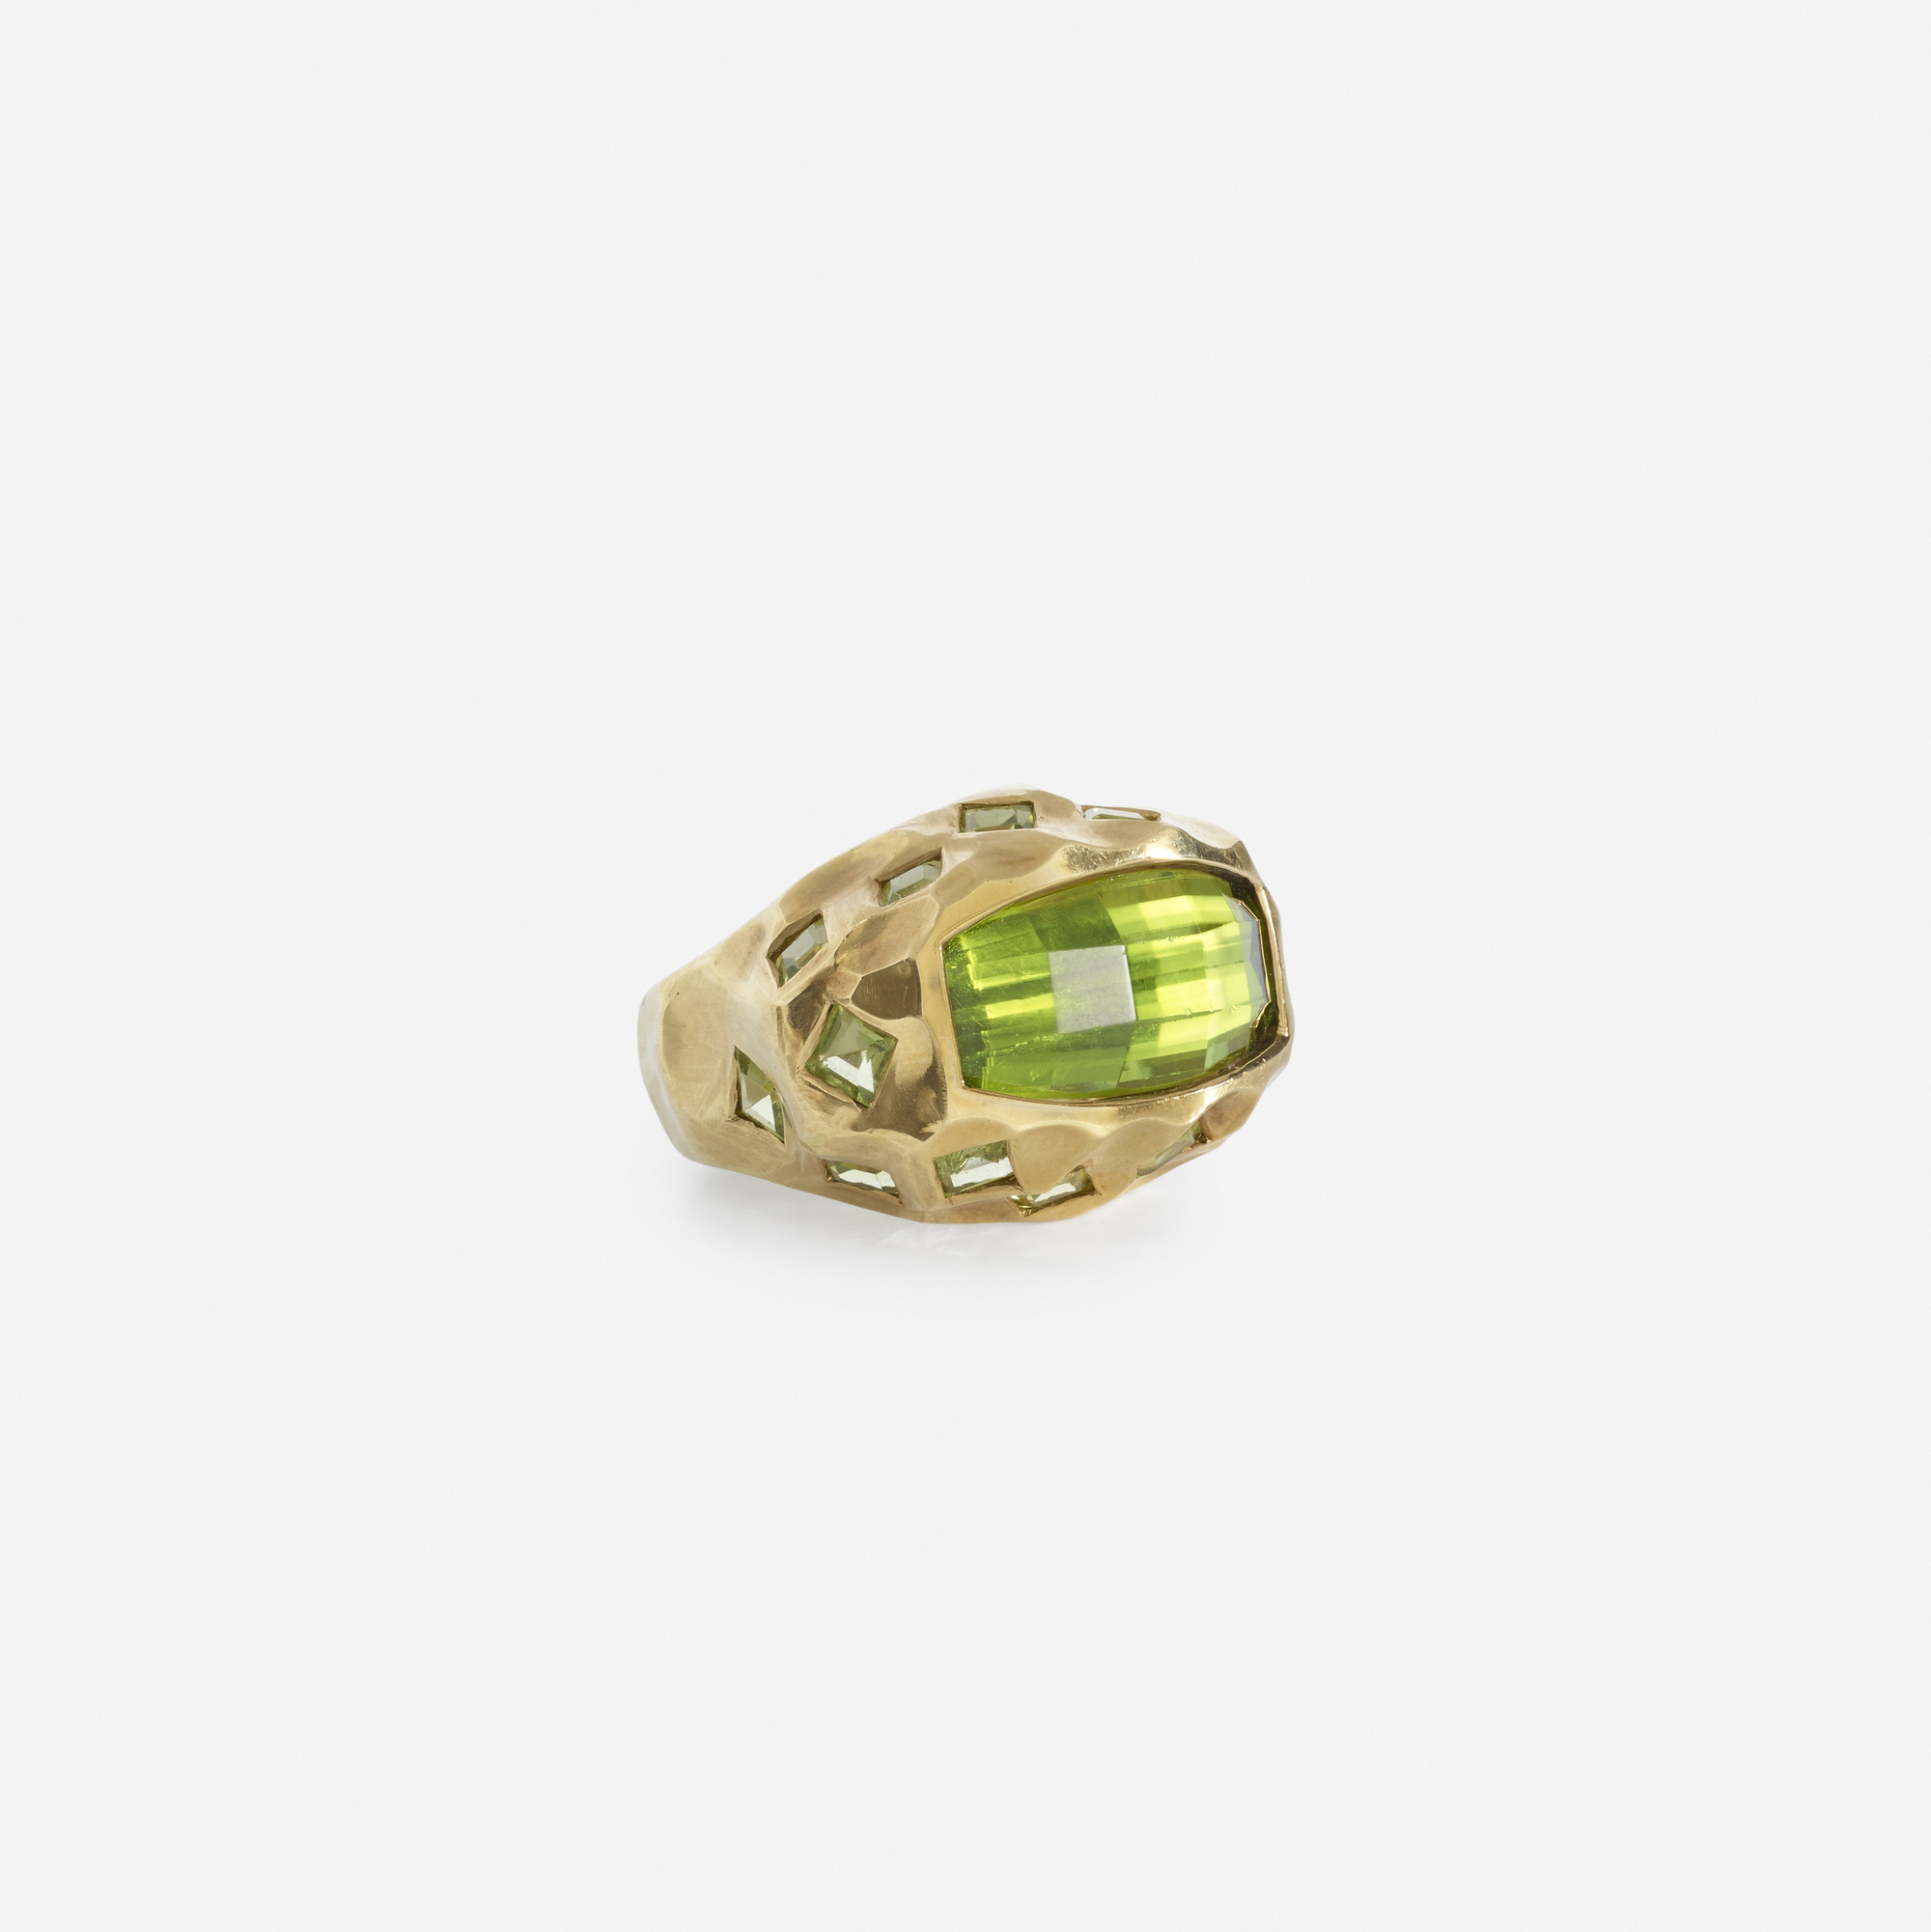 154: Tony Duquette / A gold and green tourmaline ring (2 of 2)